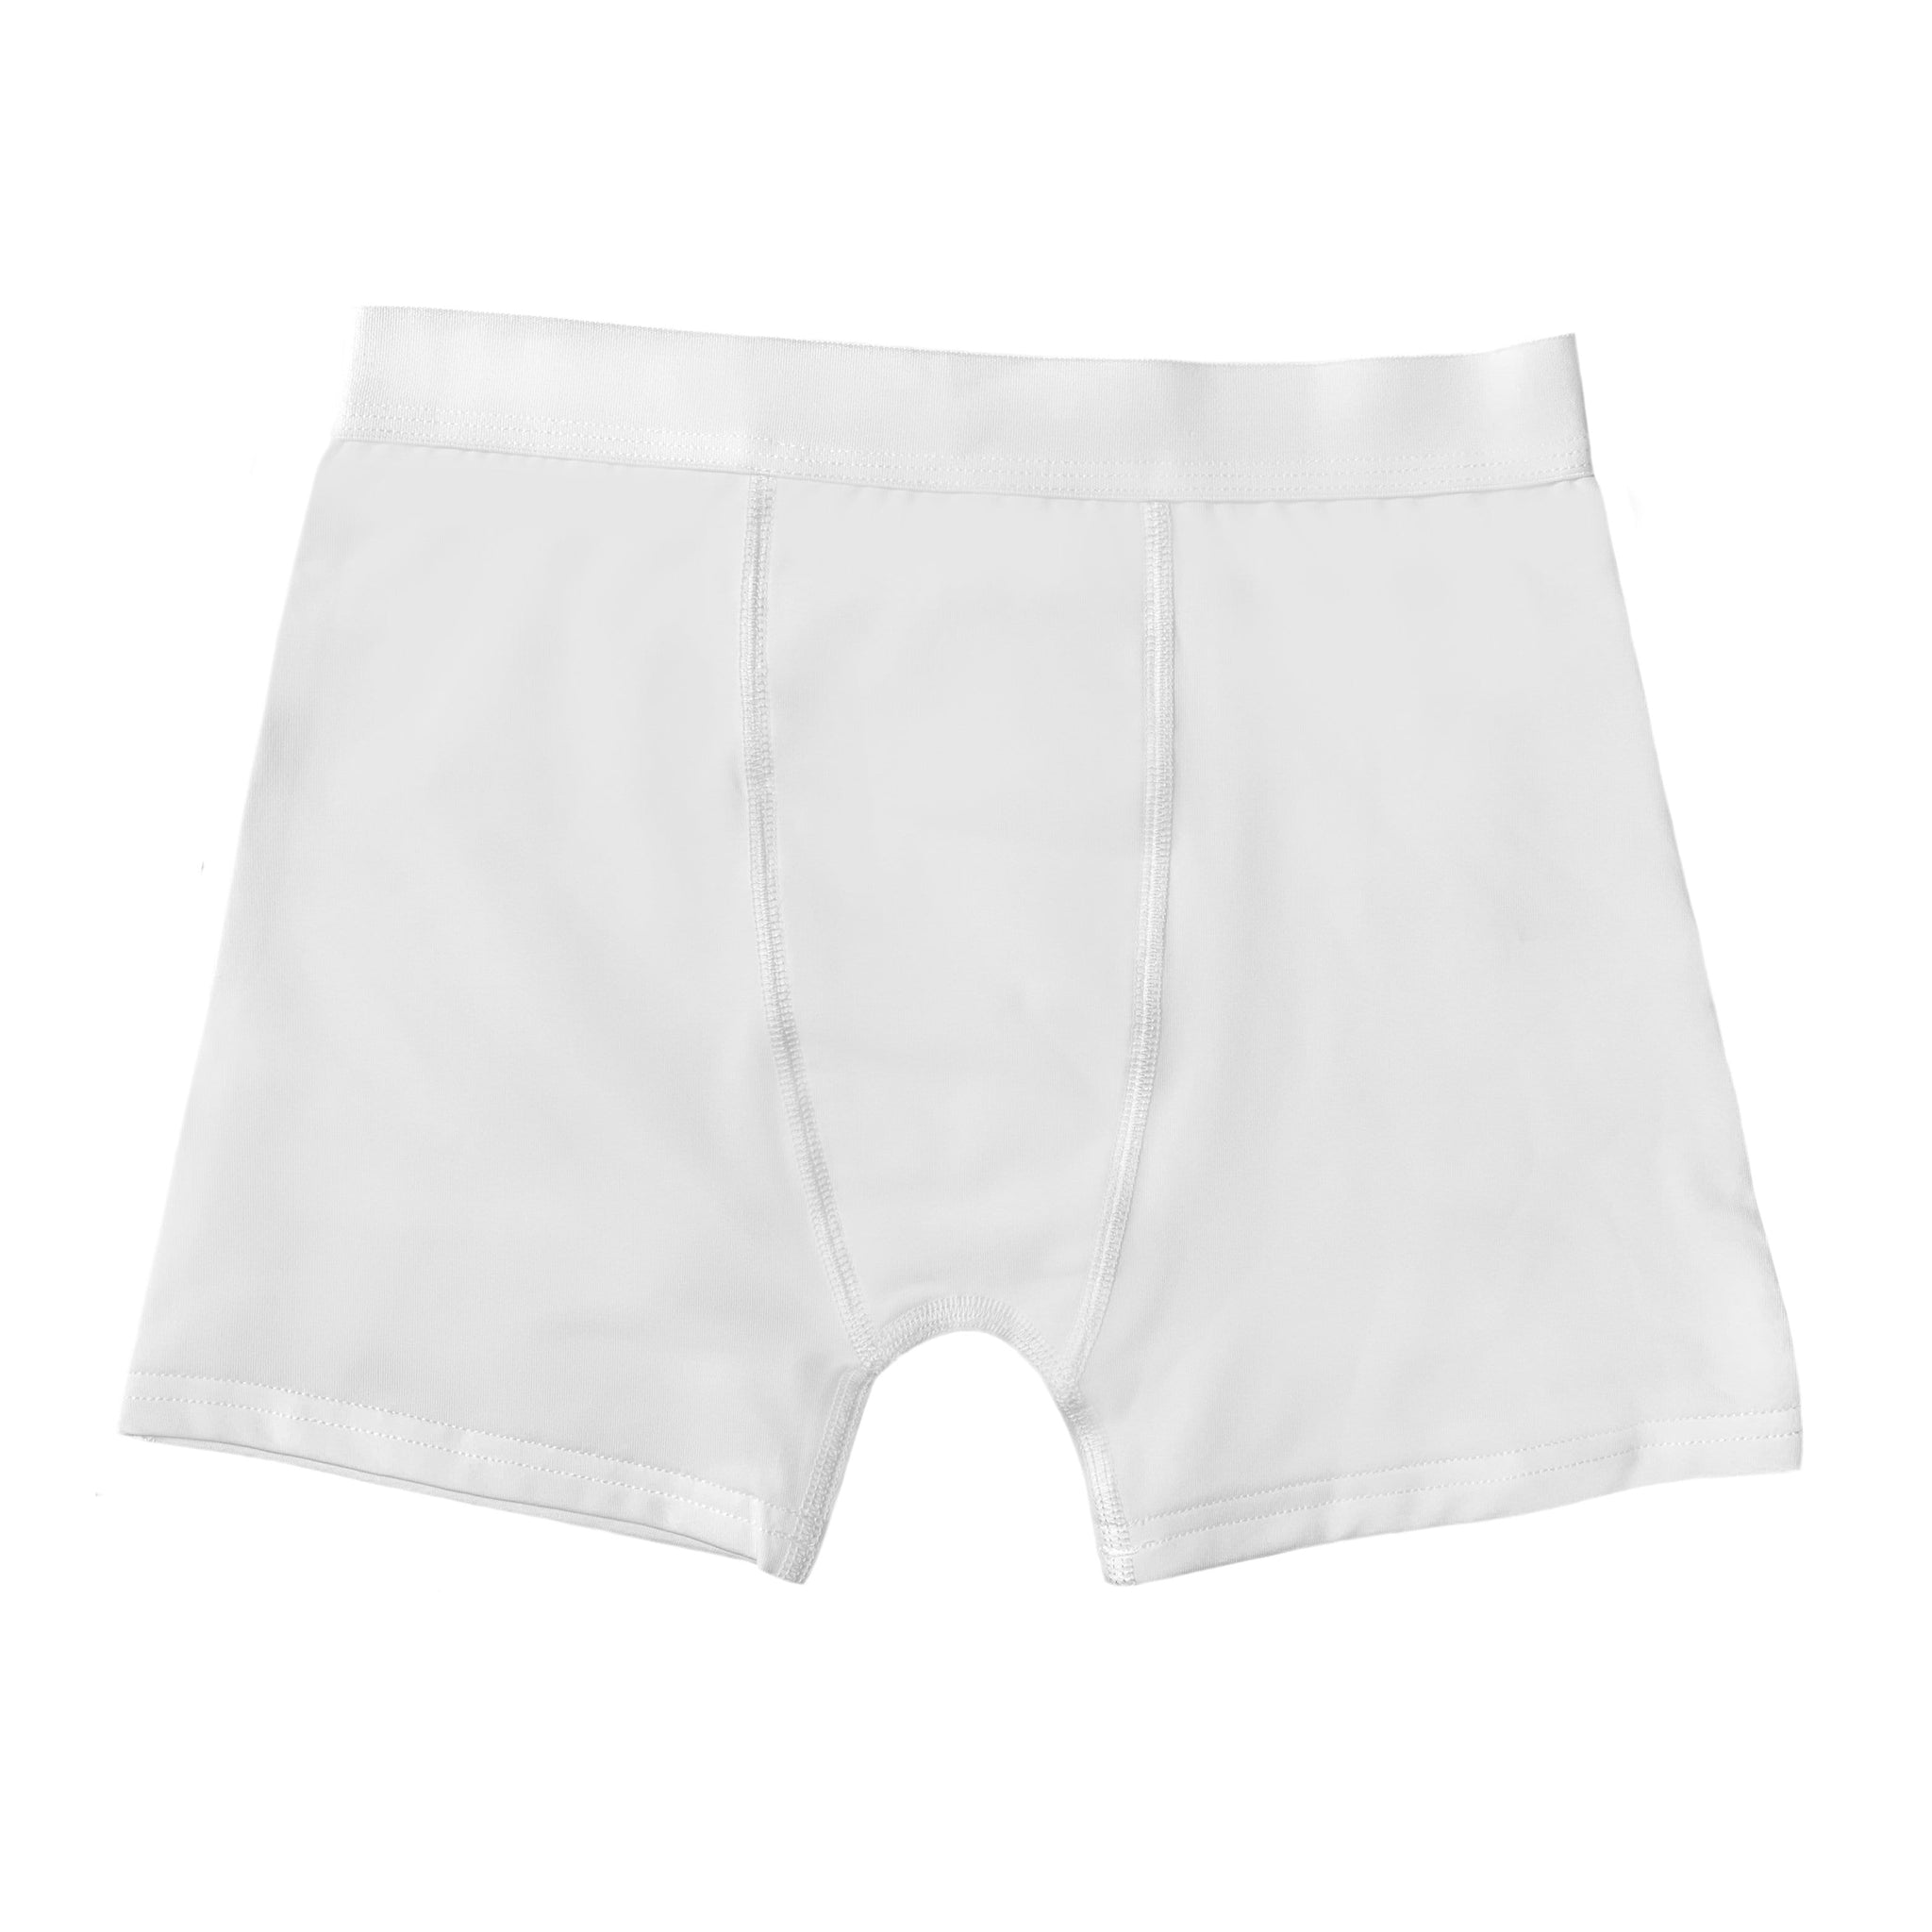 Blank Boys (Youth) Boxers